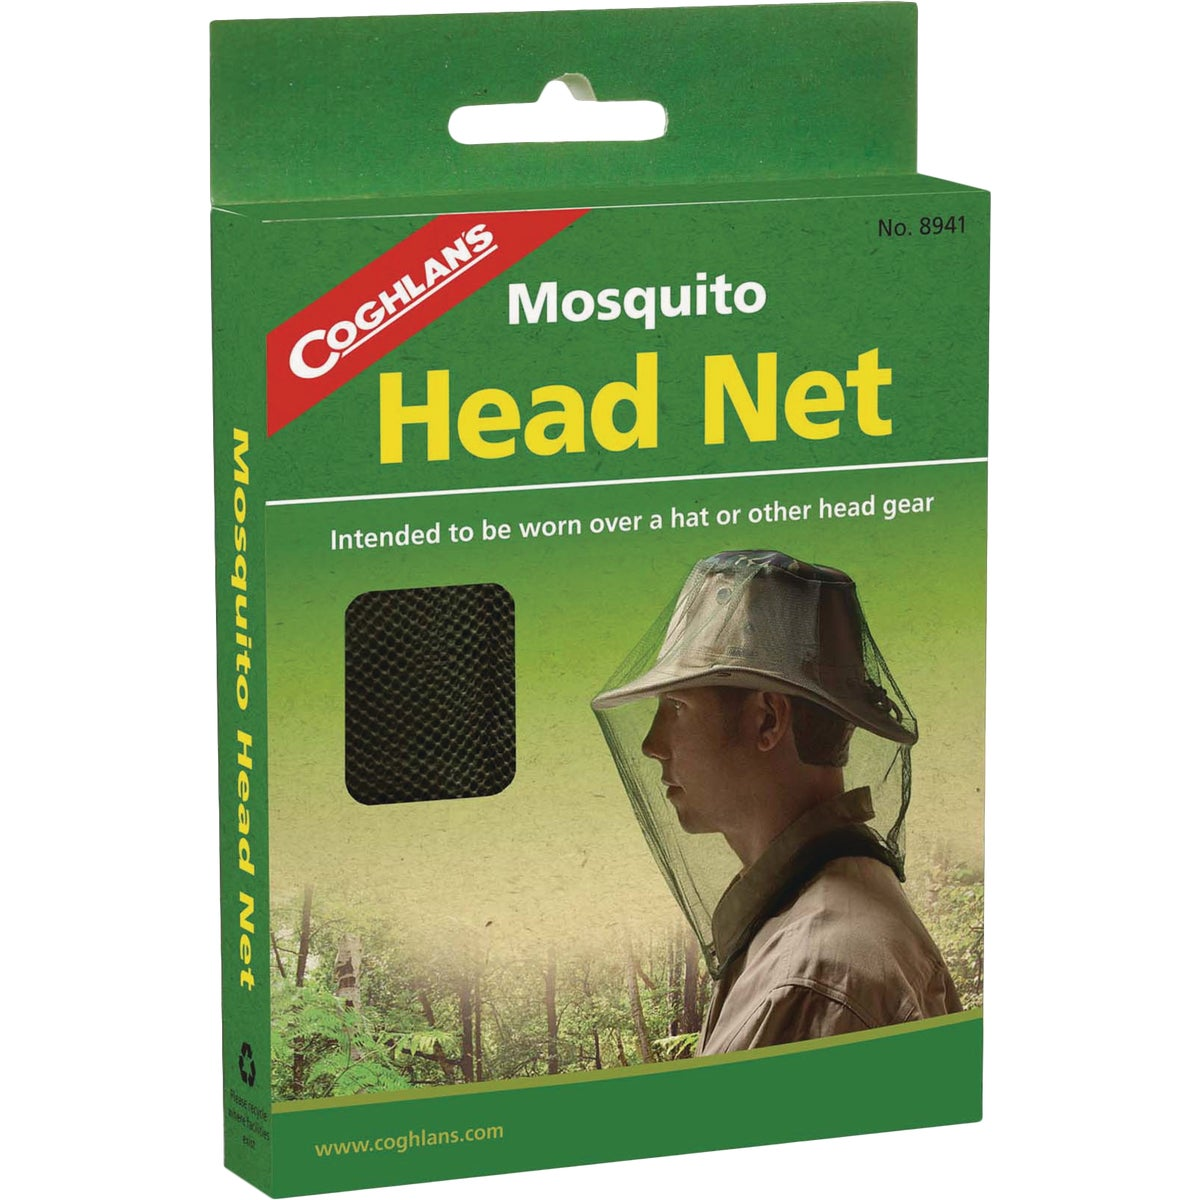 INSECT HEAD NET - 2000014864 by Coleman